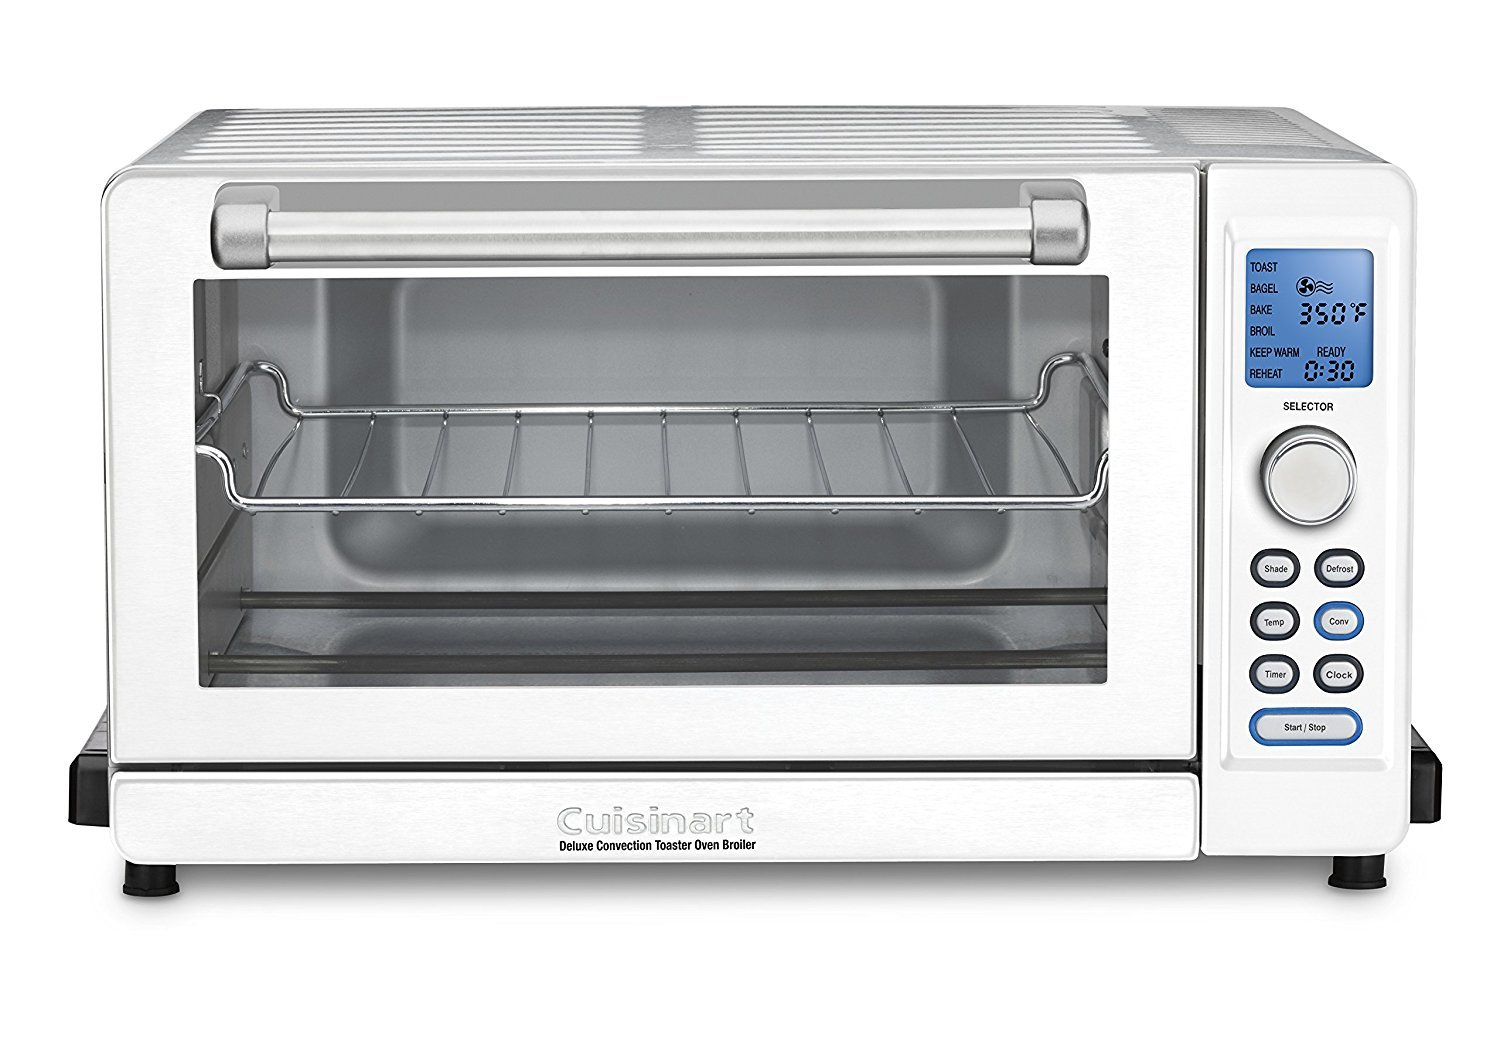 d0f6f3e8c59 Cuisinart Deluxe Convection Toaster Oven Broiler